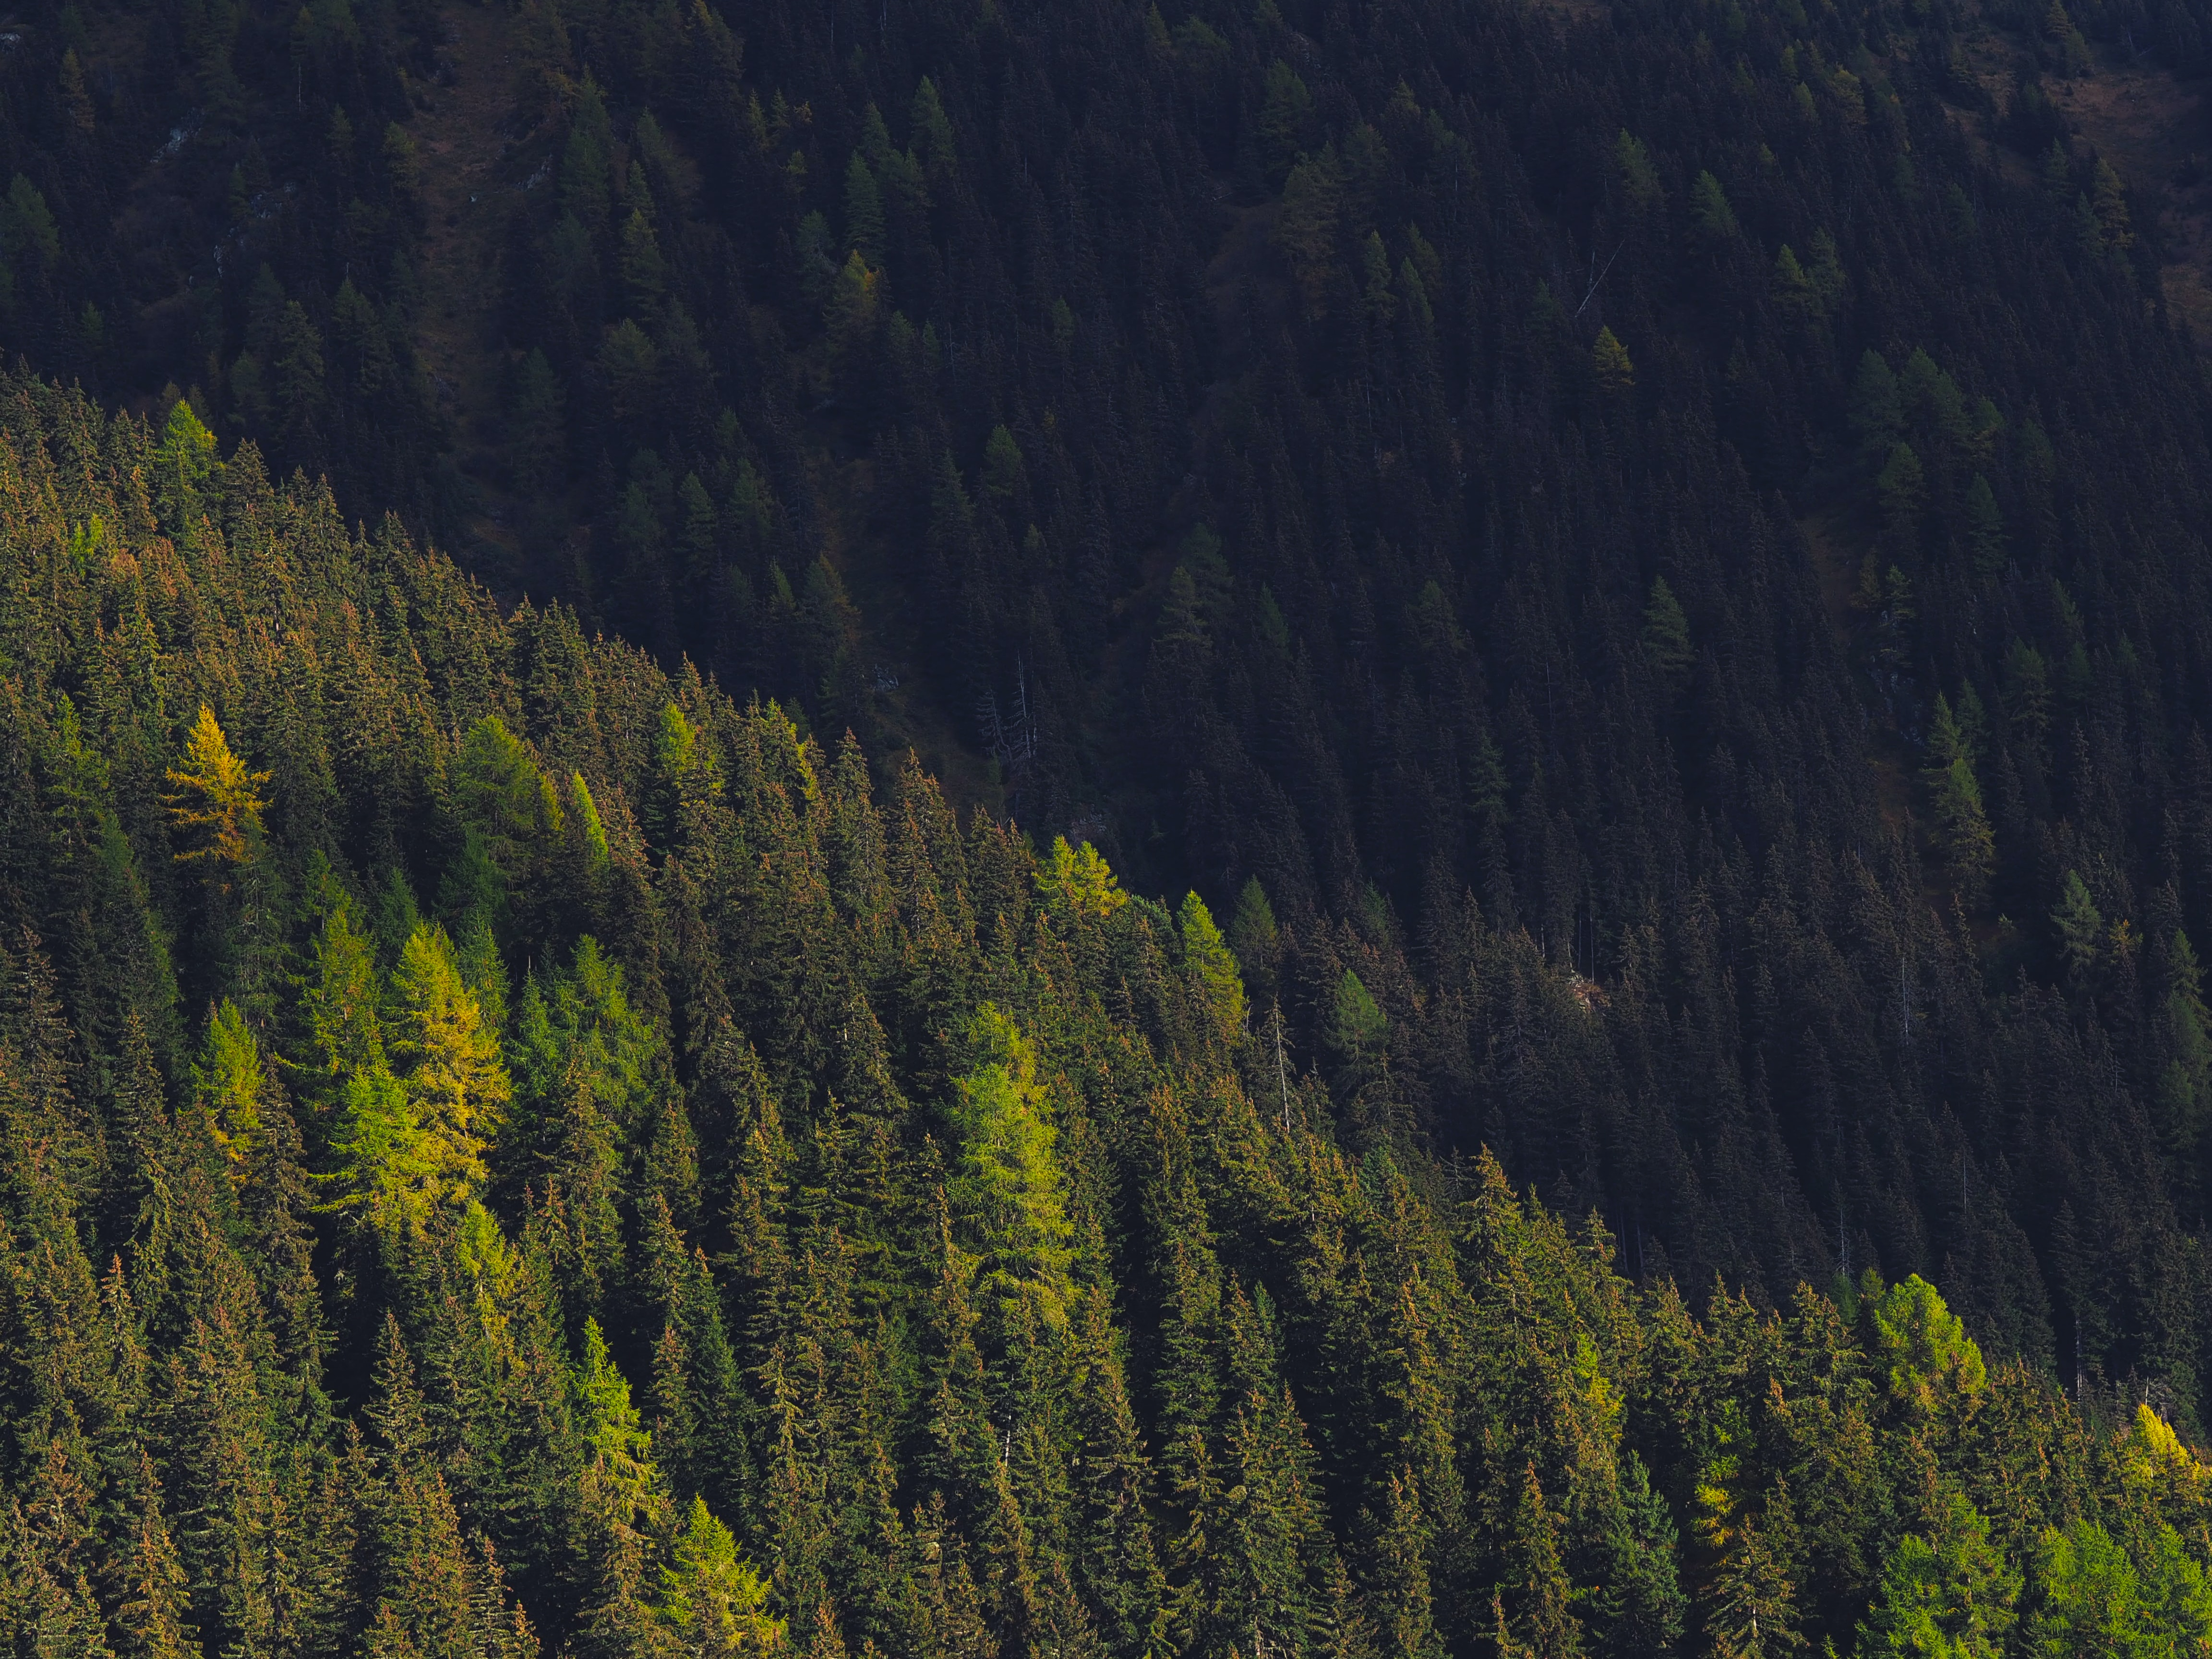 A green coniferous forest on a slope in Verbier